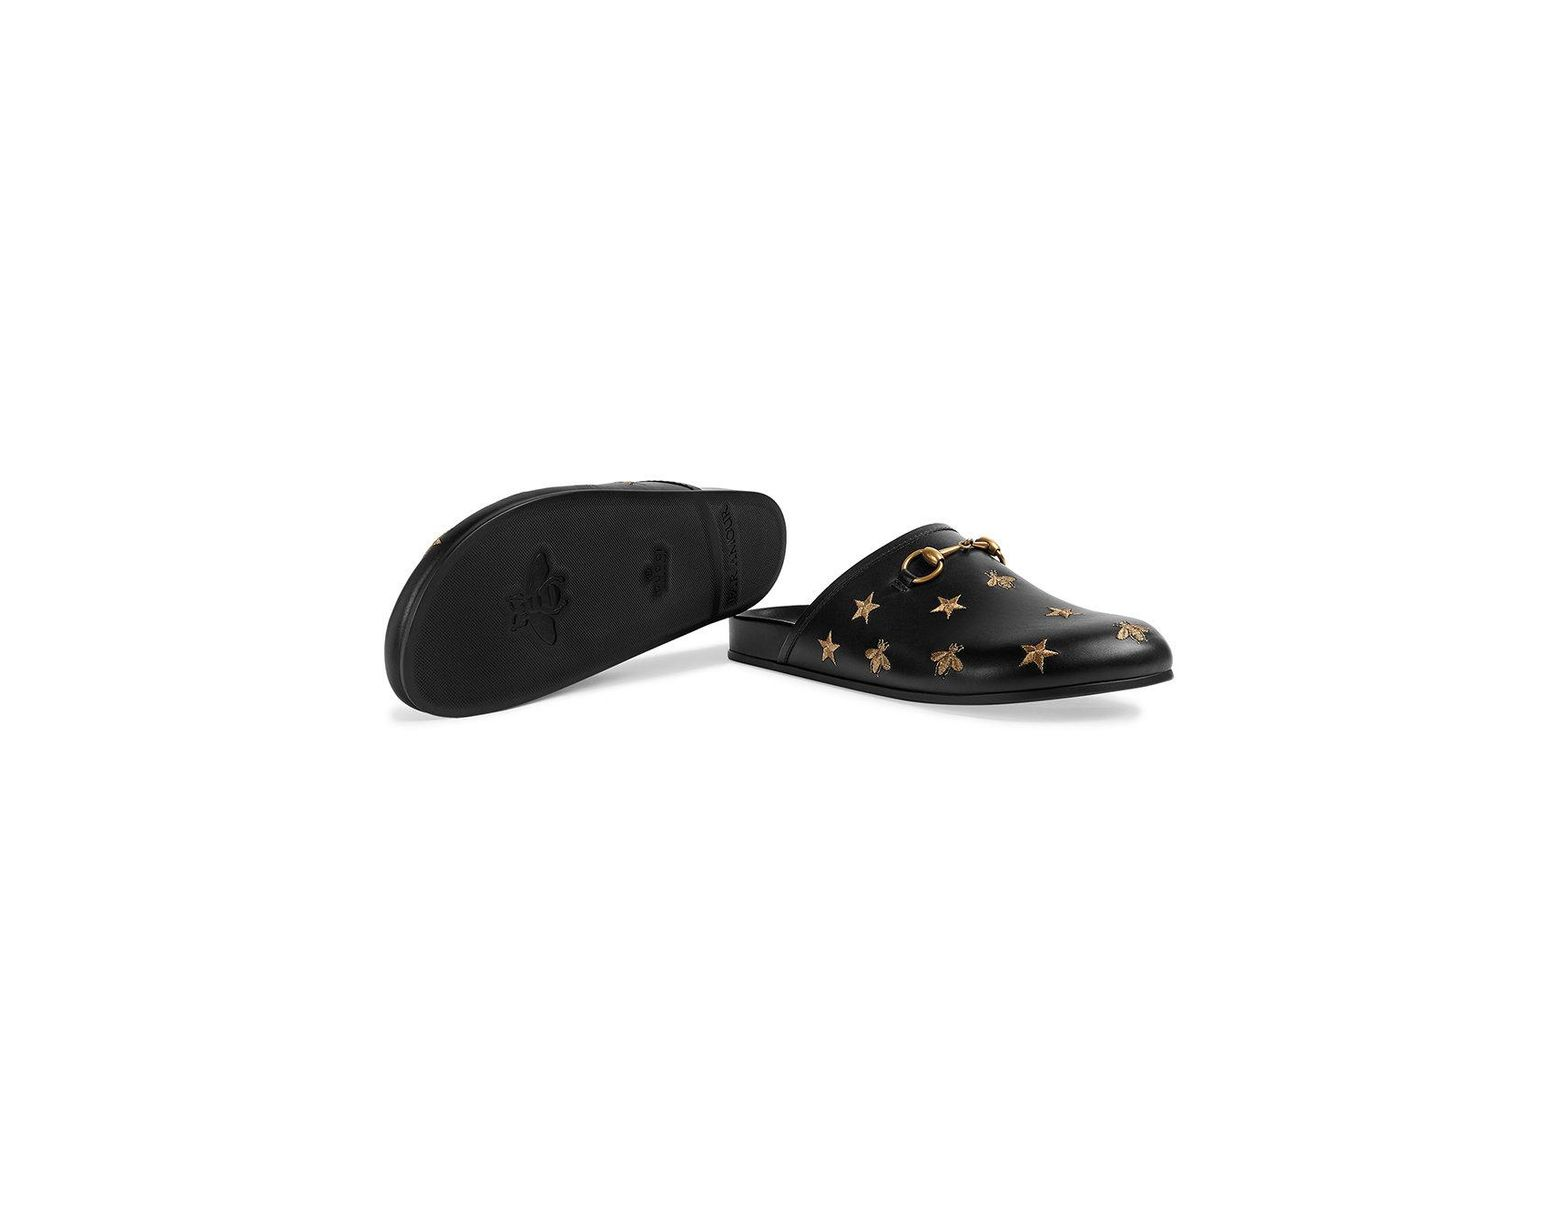 f1776ed00256 Lyst - Gucci Horsebit Embroidered Leather Slipper in Black for Men